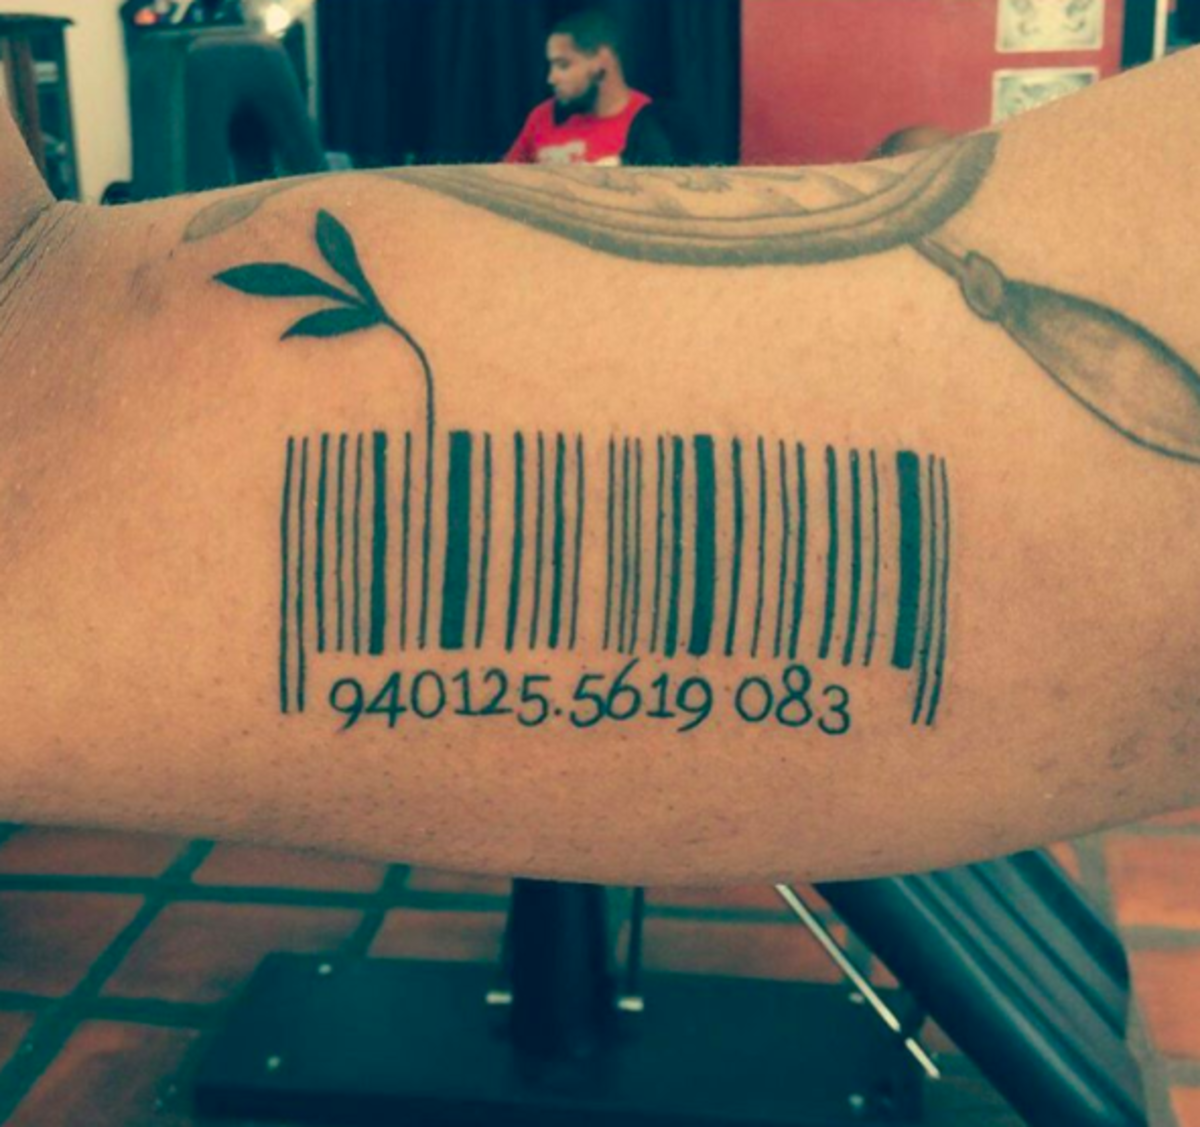 Scannable Barcode Tattoos Tattoo Ideas Artists And Models